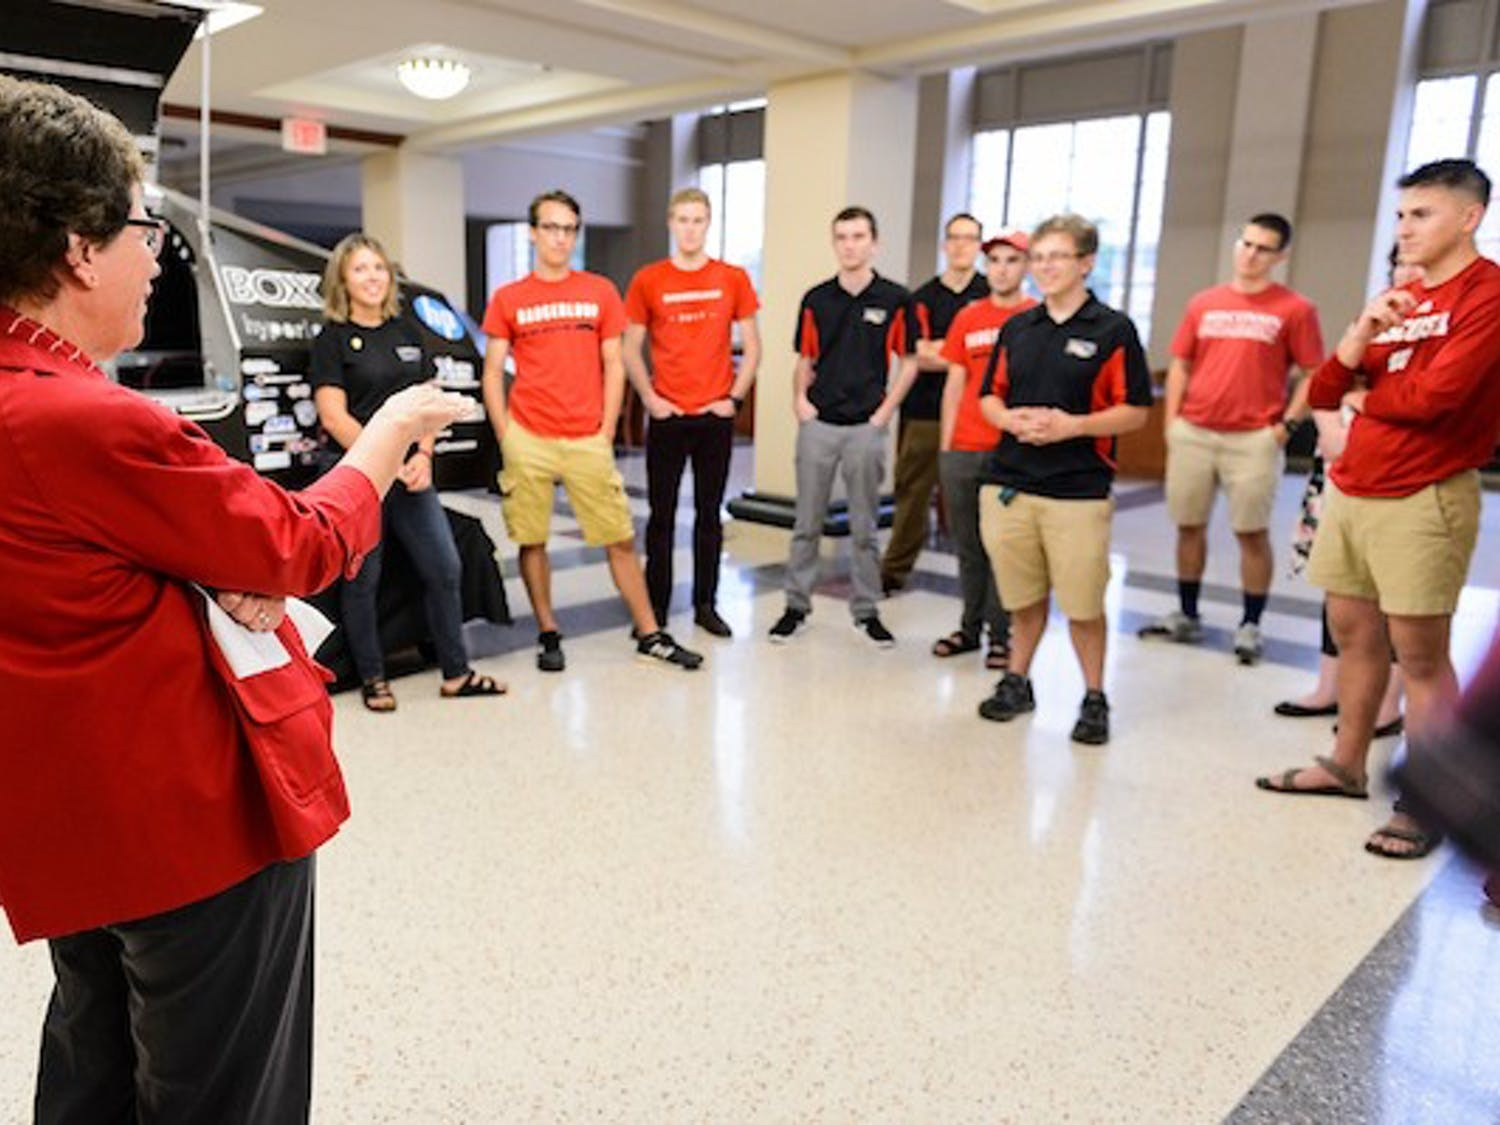 Standing near a 2016-era Badgerloop Pod, Chancellor Rebecca Blank visits with members of the College of Engineering's Badgerloop team at the Mechanical Engineering Building at the University of Wisconsin-Madison on Aug. 16, 2017. The group is preparing to depart for and compete with their 2017-era Badgerloop Pod II -- already in shipping transit -- in the international SpaceX Hyperloop Competition II Aug. 25-27, 2017, in California. A hyperloop involves a pod moving in a low-pressure tube at hundreds of miles per hour. The sole criteria for the 2017 SpaceX competition is speed. (Photo by Jeff Miller / UW-Madison)